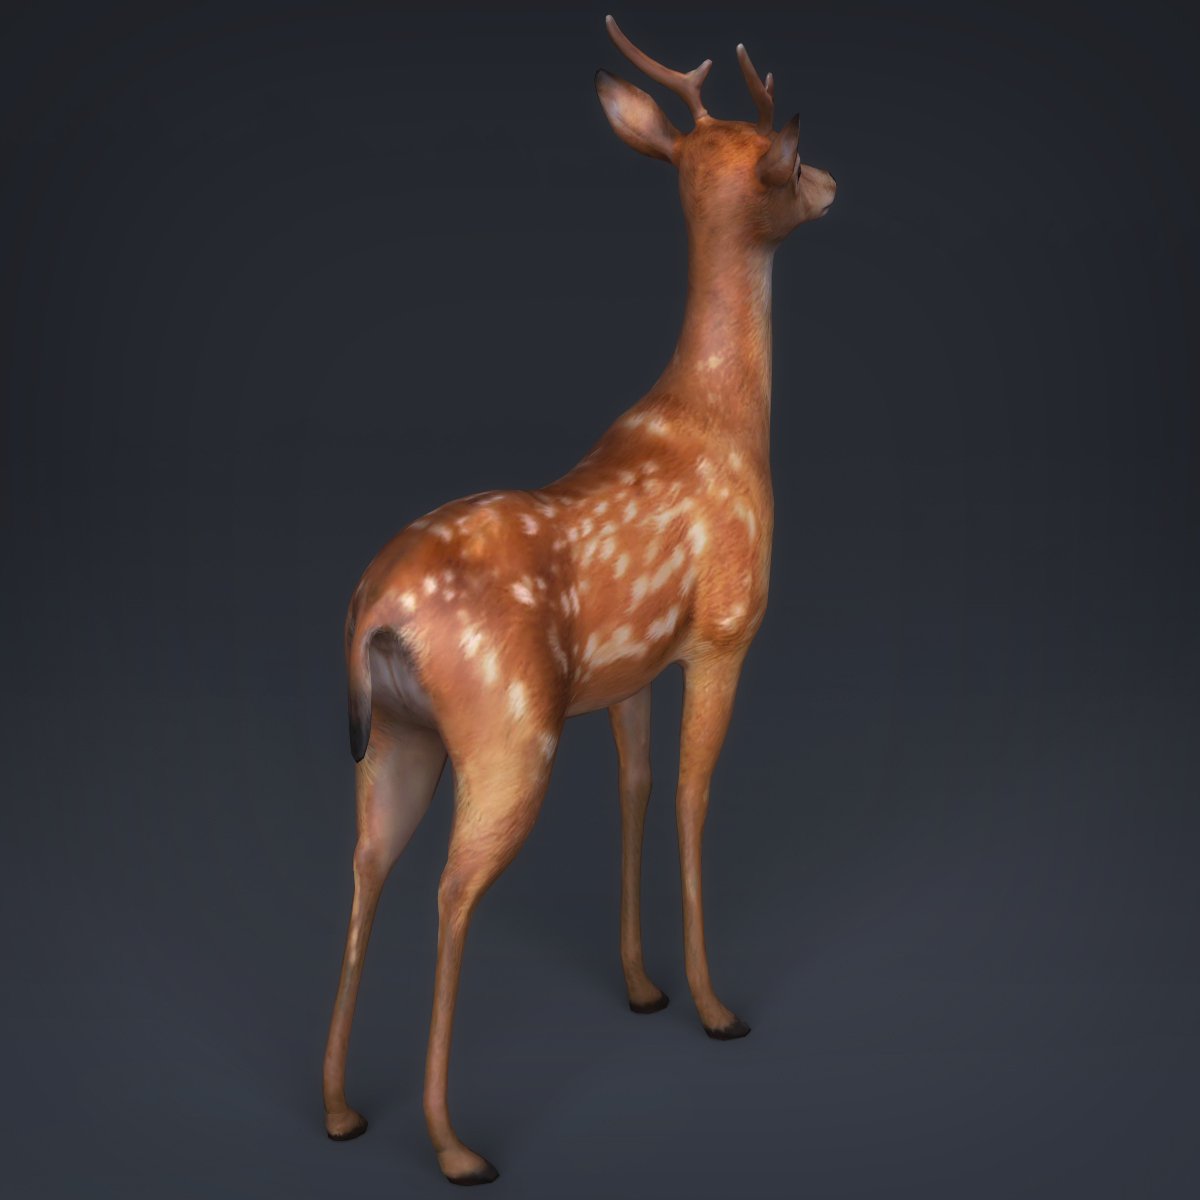 low poly realistic deer 3d model max fbx c4d ma mb obj 223714